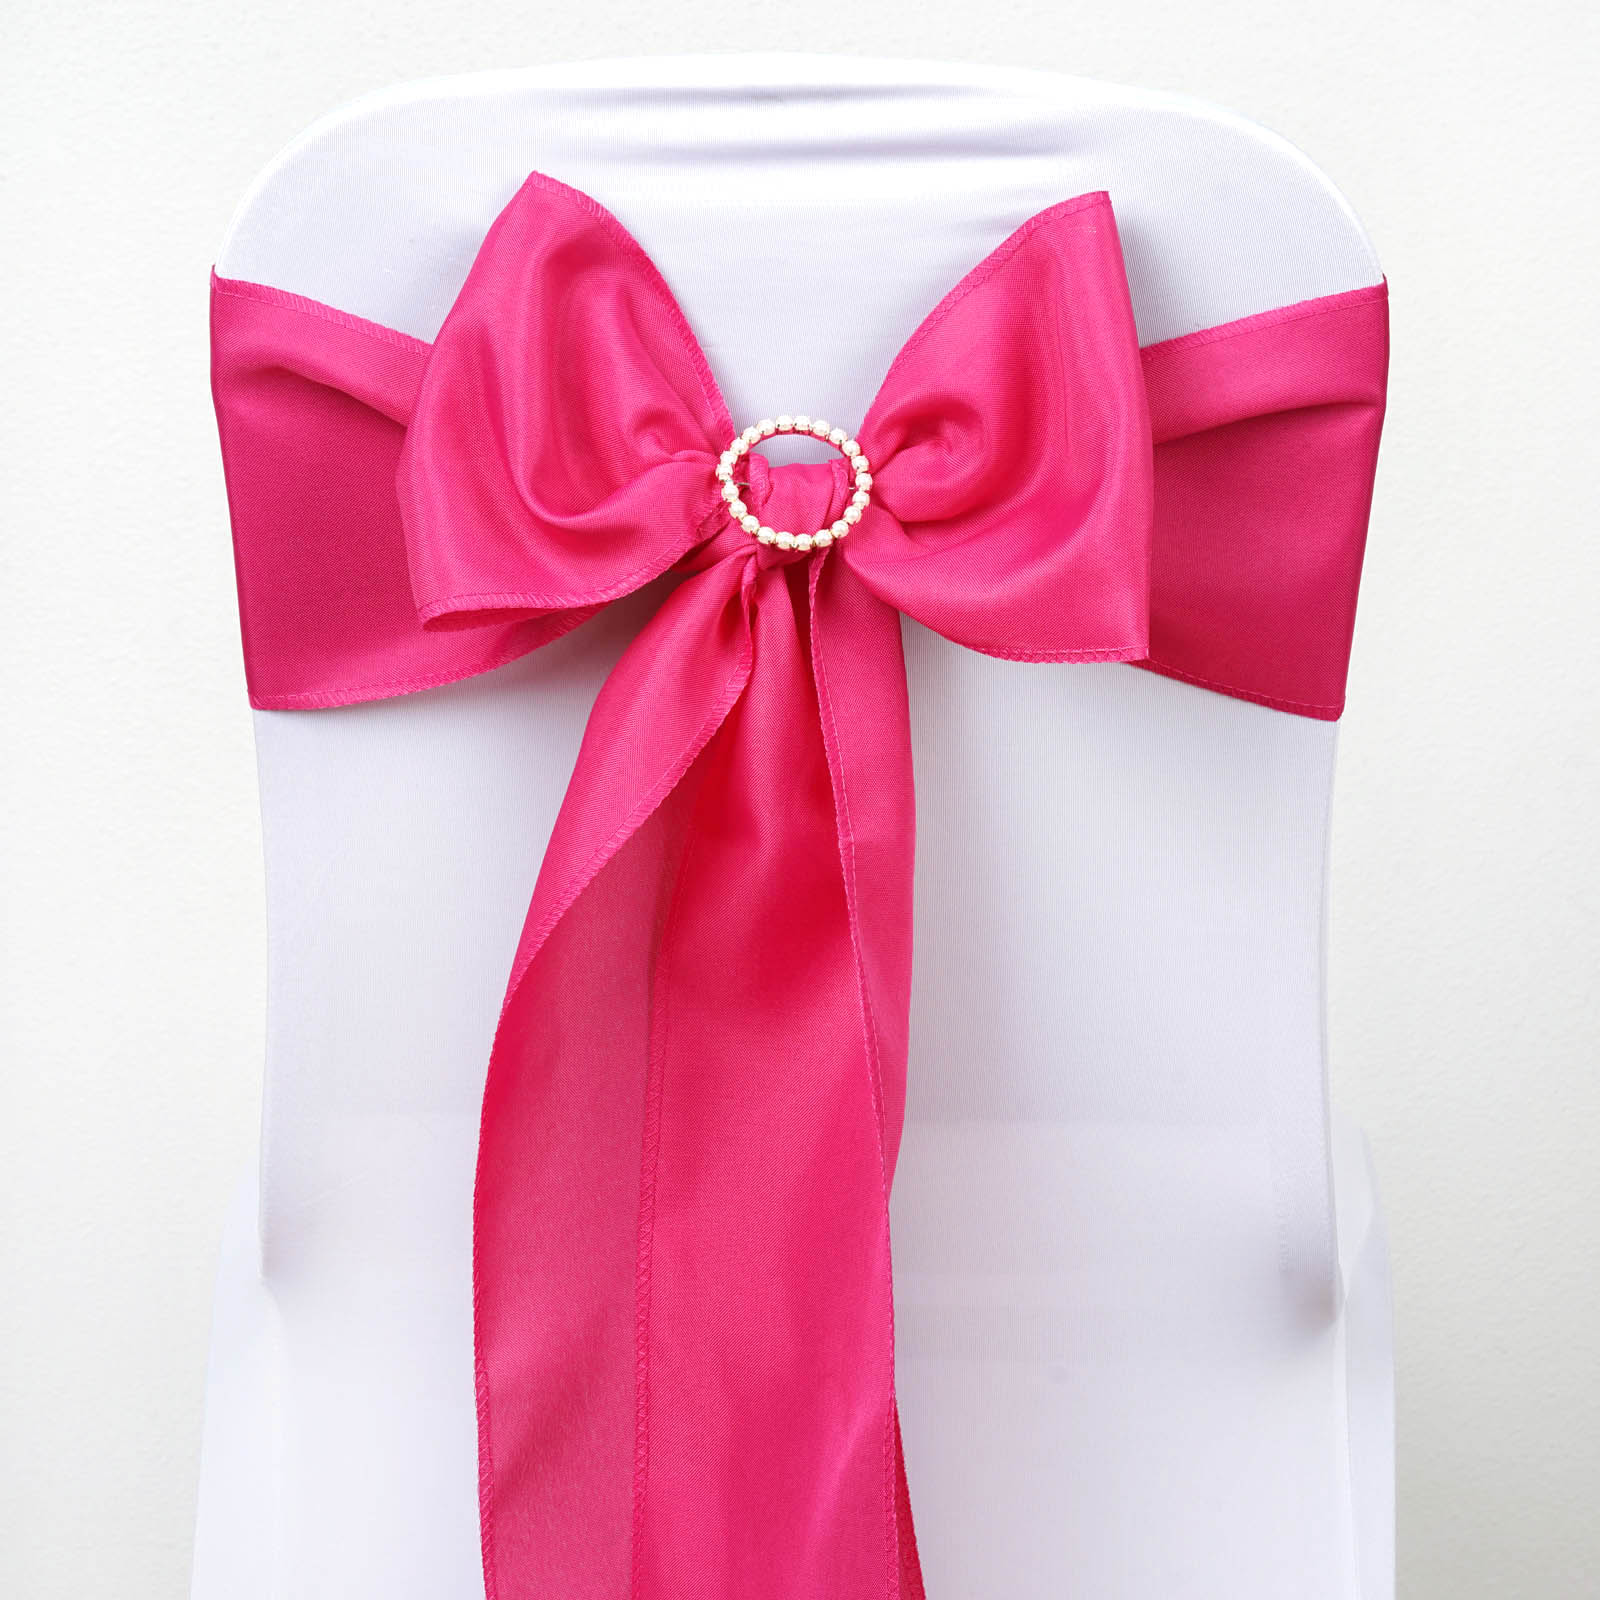 polyester chair sashes wholesale sling material 100 bows ties wedding party